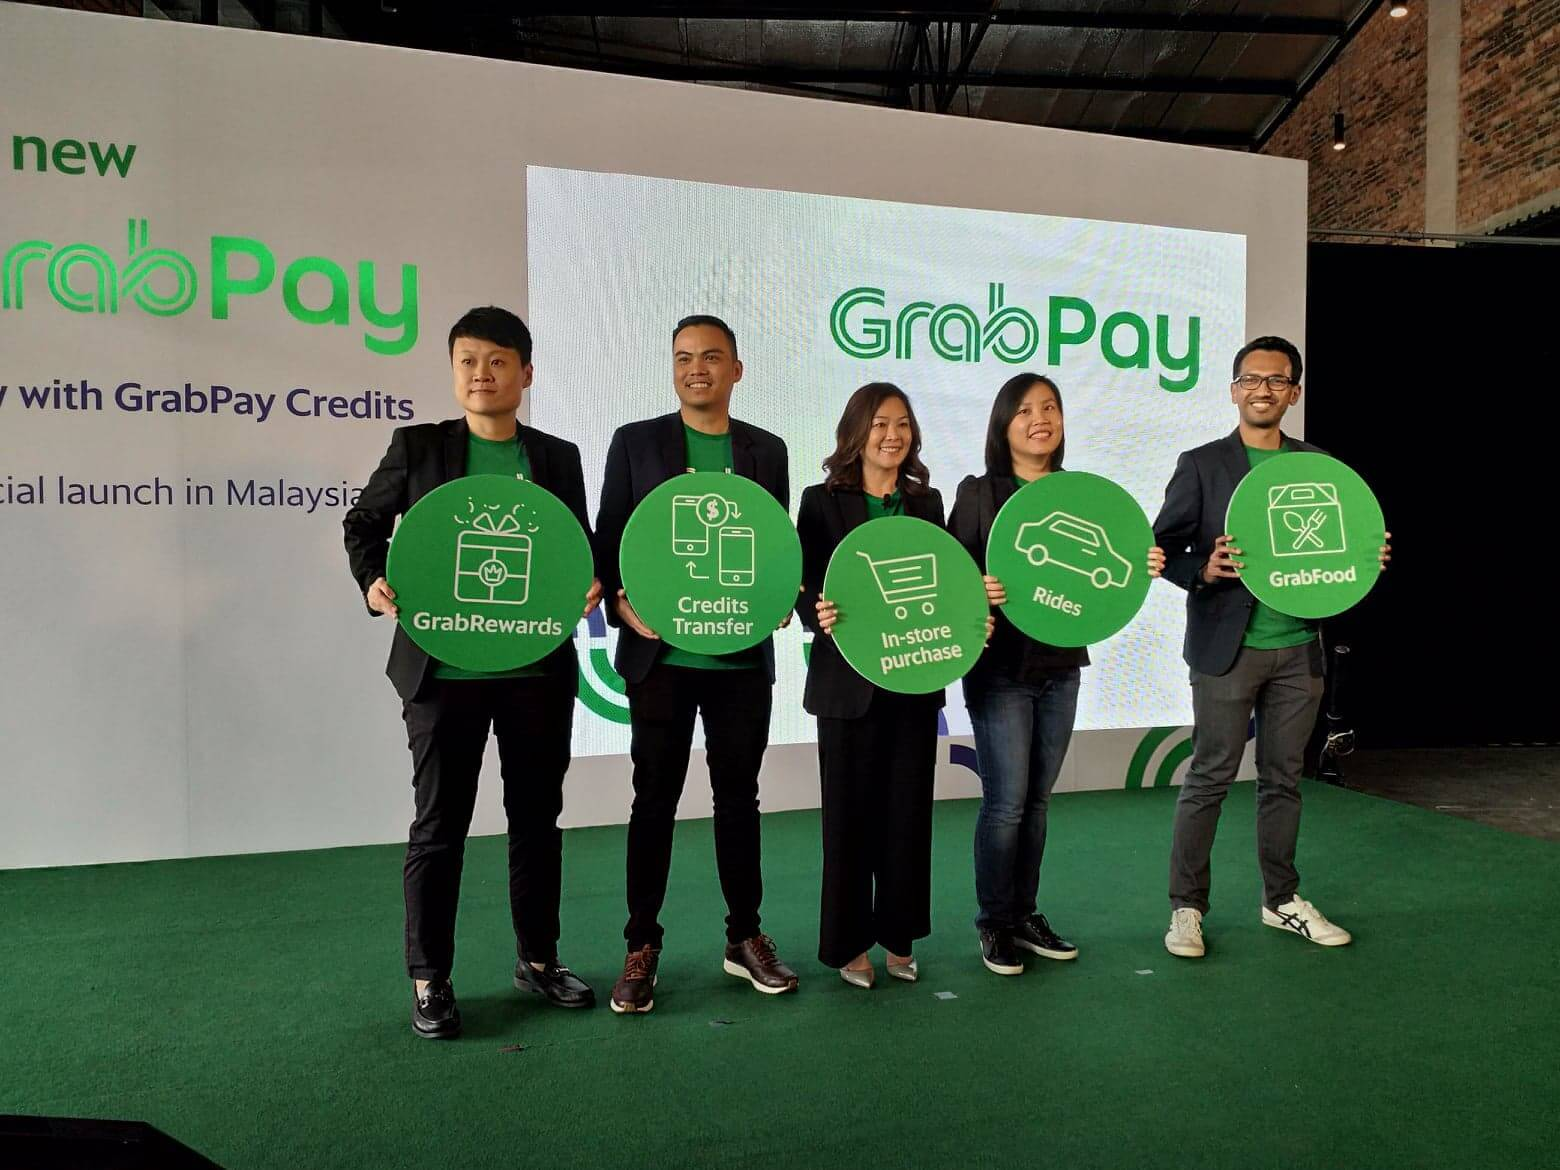 grab executives posing for a photo during the launch of grabpay in malaysia